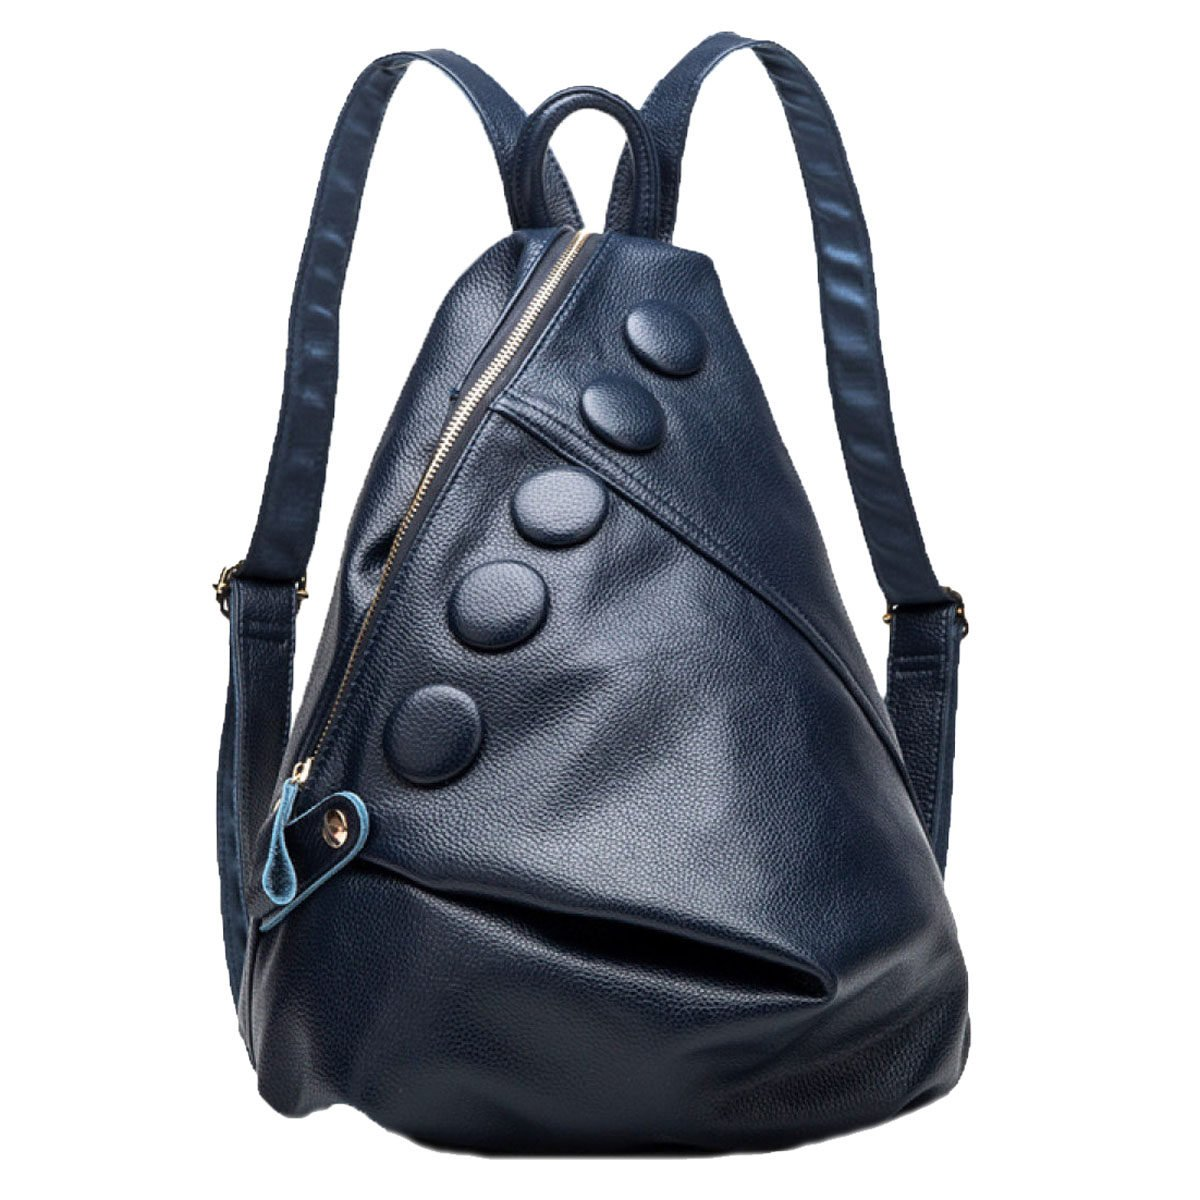 bluee M Ladies Genuine Leather Backpack Medium Cool Style Shoulder Bag With Five Buttons